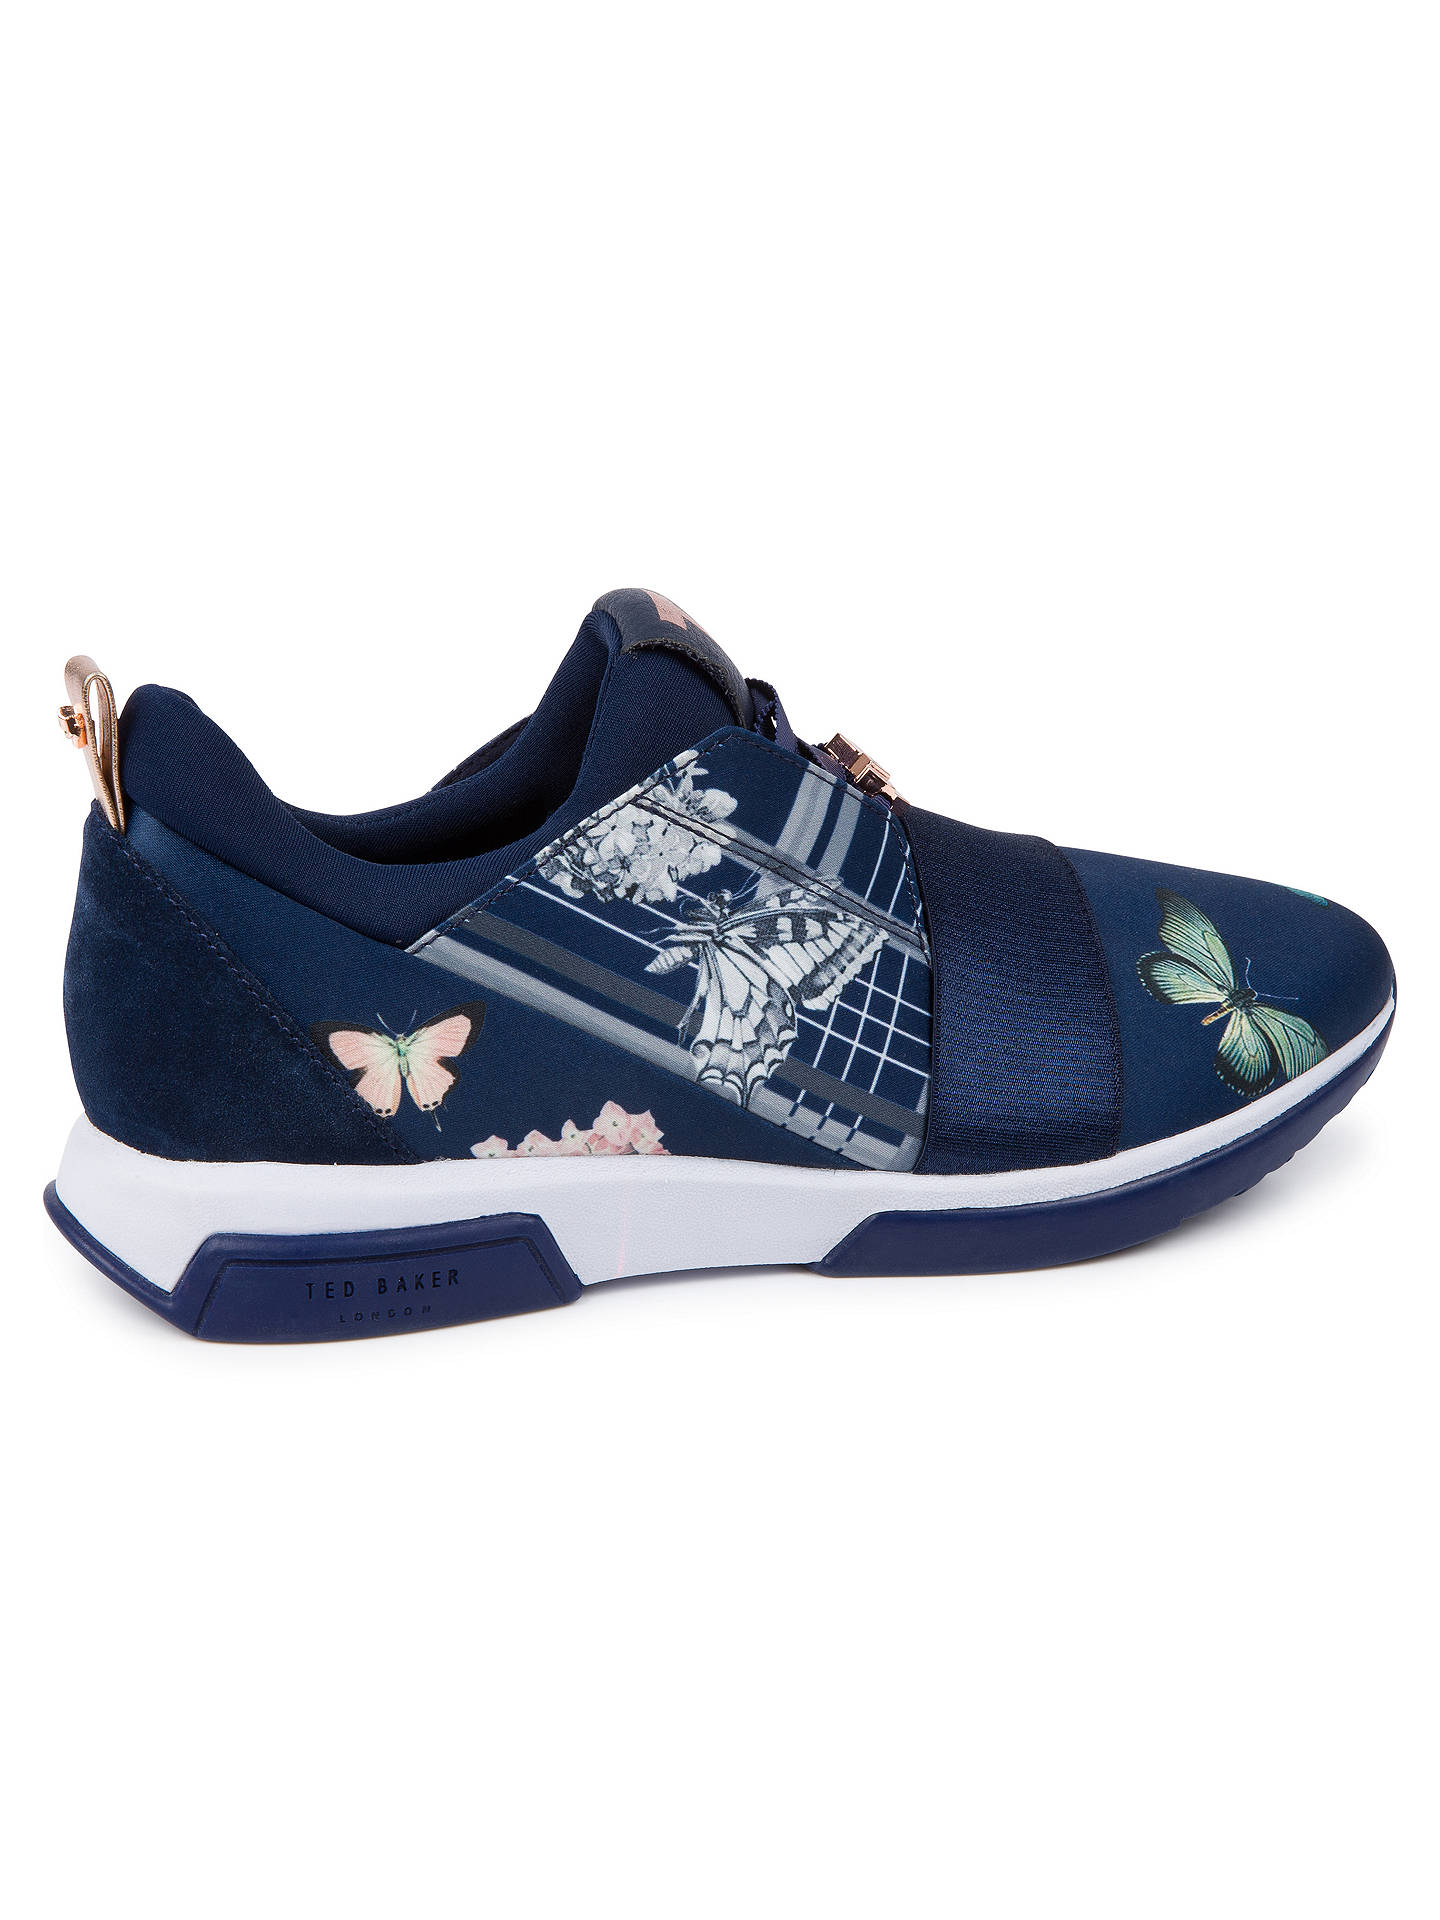 BuyTed Baker Cepap 3 Textile Trainers, Navy, 6 Online at johnlewis.com